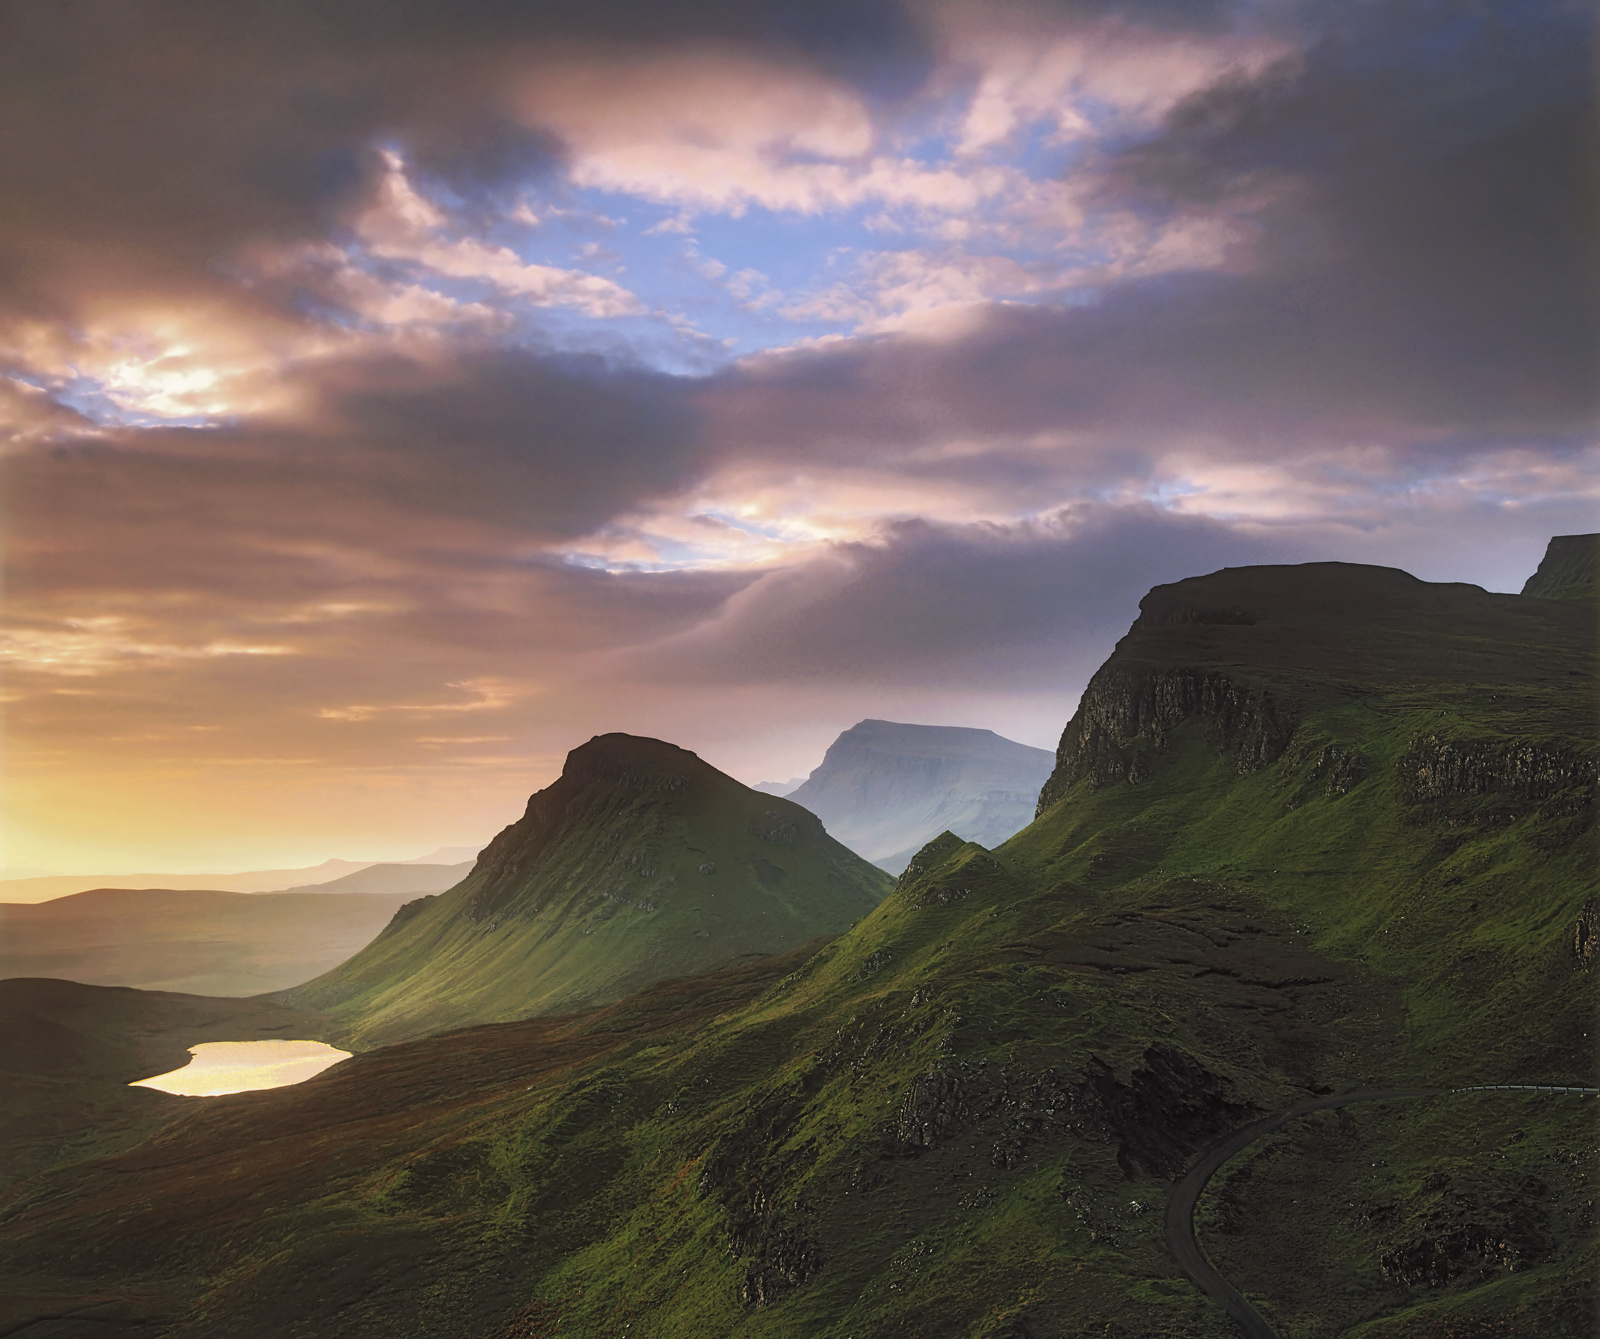 This sumptuous prehistoric view looks more like a film set from Jurassic Park than an island off the west coast of Scotland....